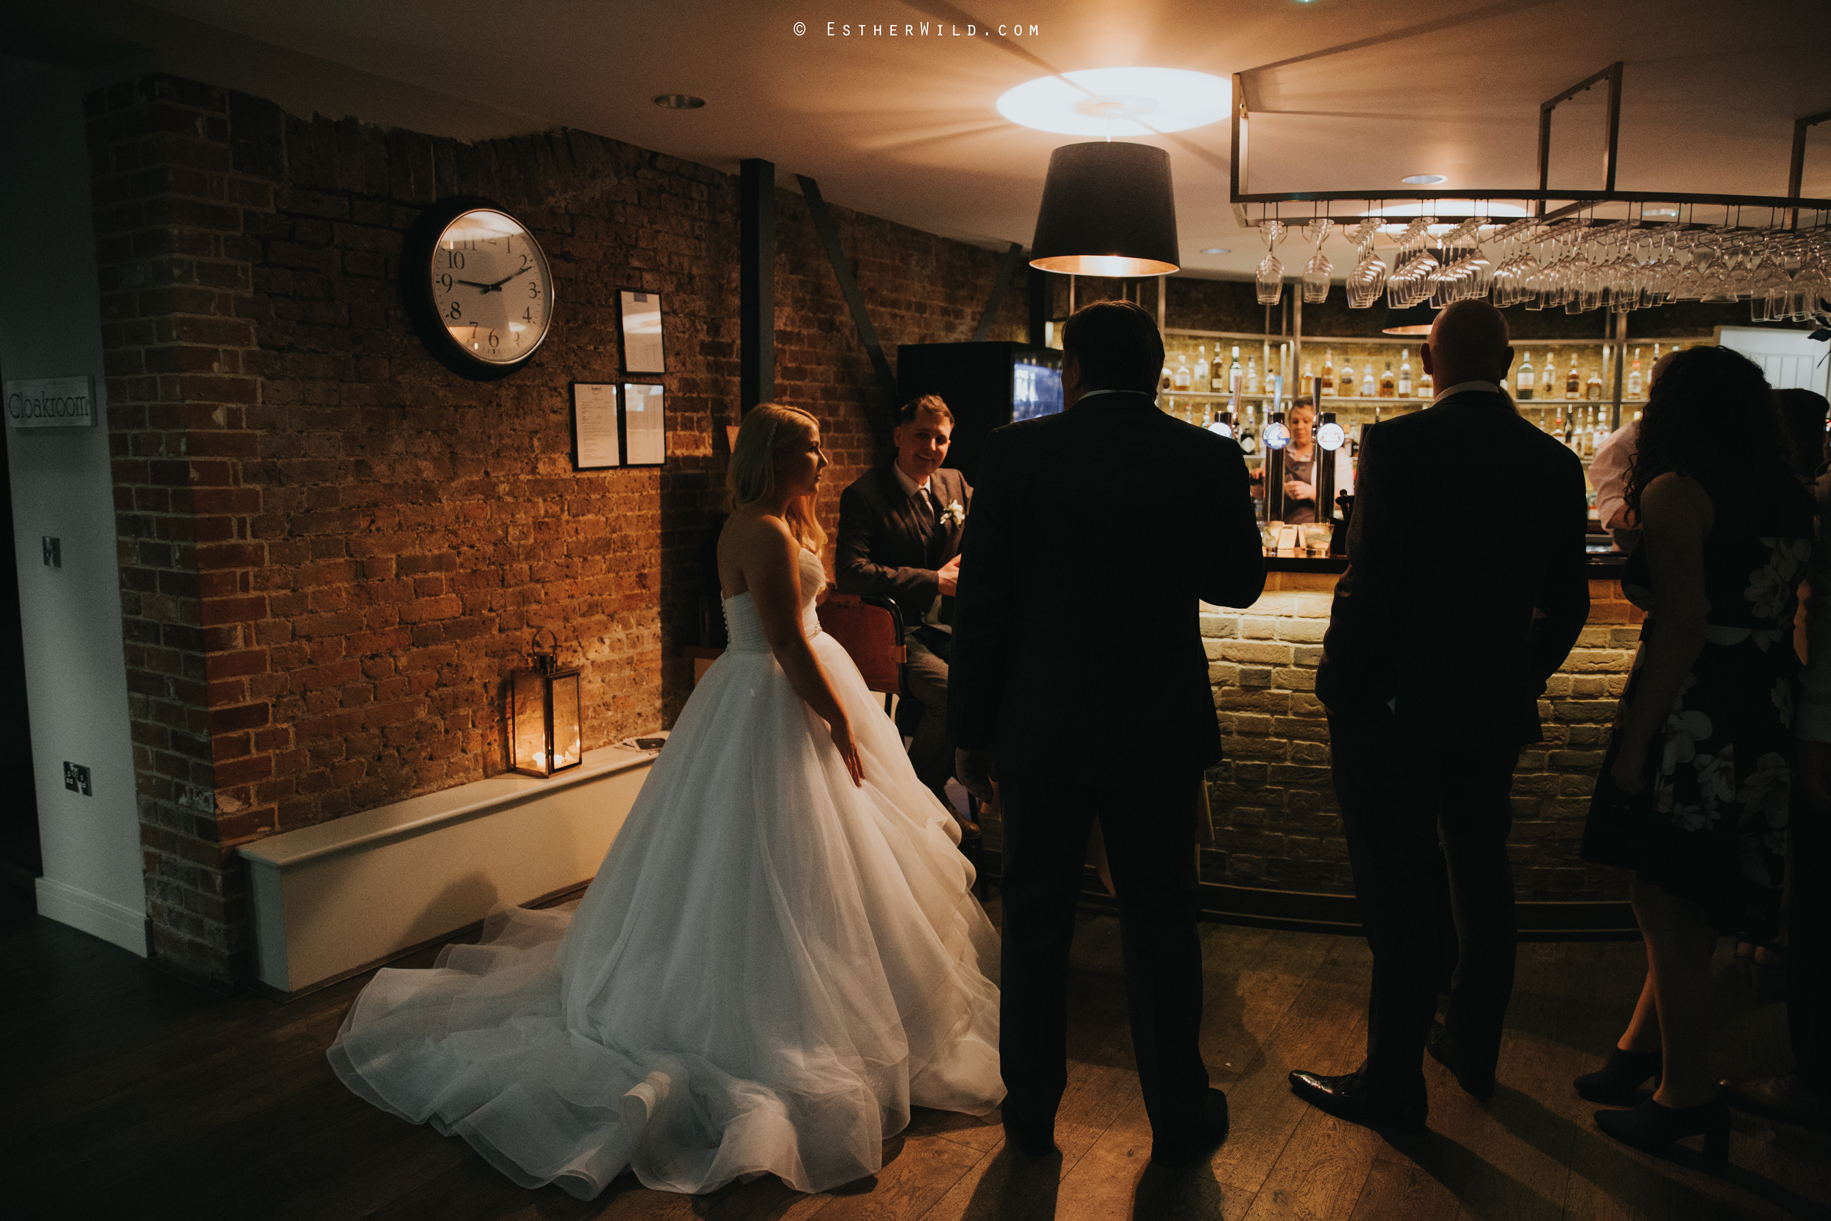 Norfolk_Mead_Hotel_Norwich_Wedding_Copyright_Esther_Wild_Photographer_IMG_3669.jpg